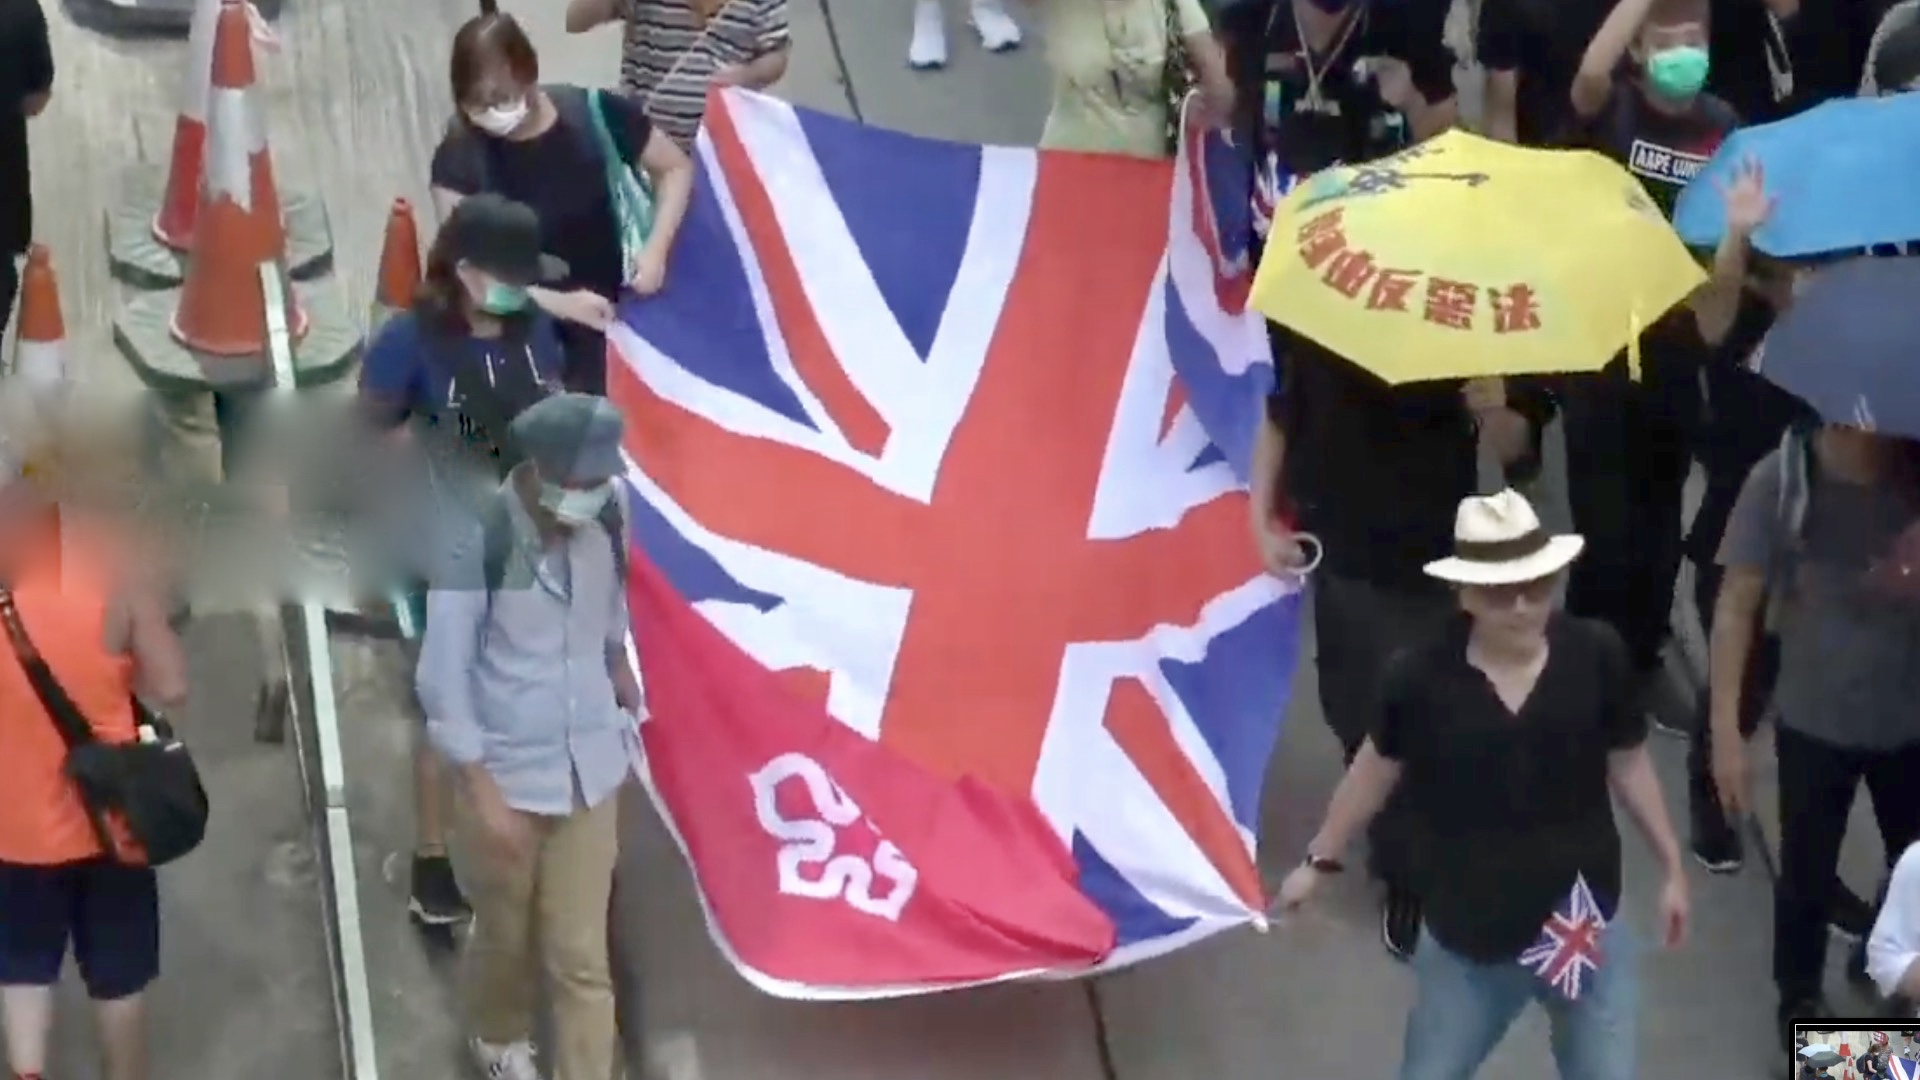 Protesters march against extradition bill in Hong Kong